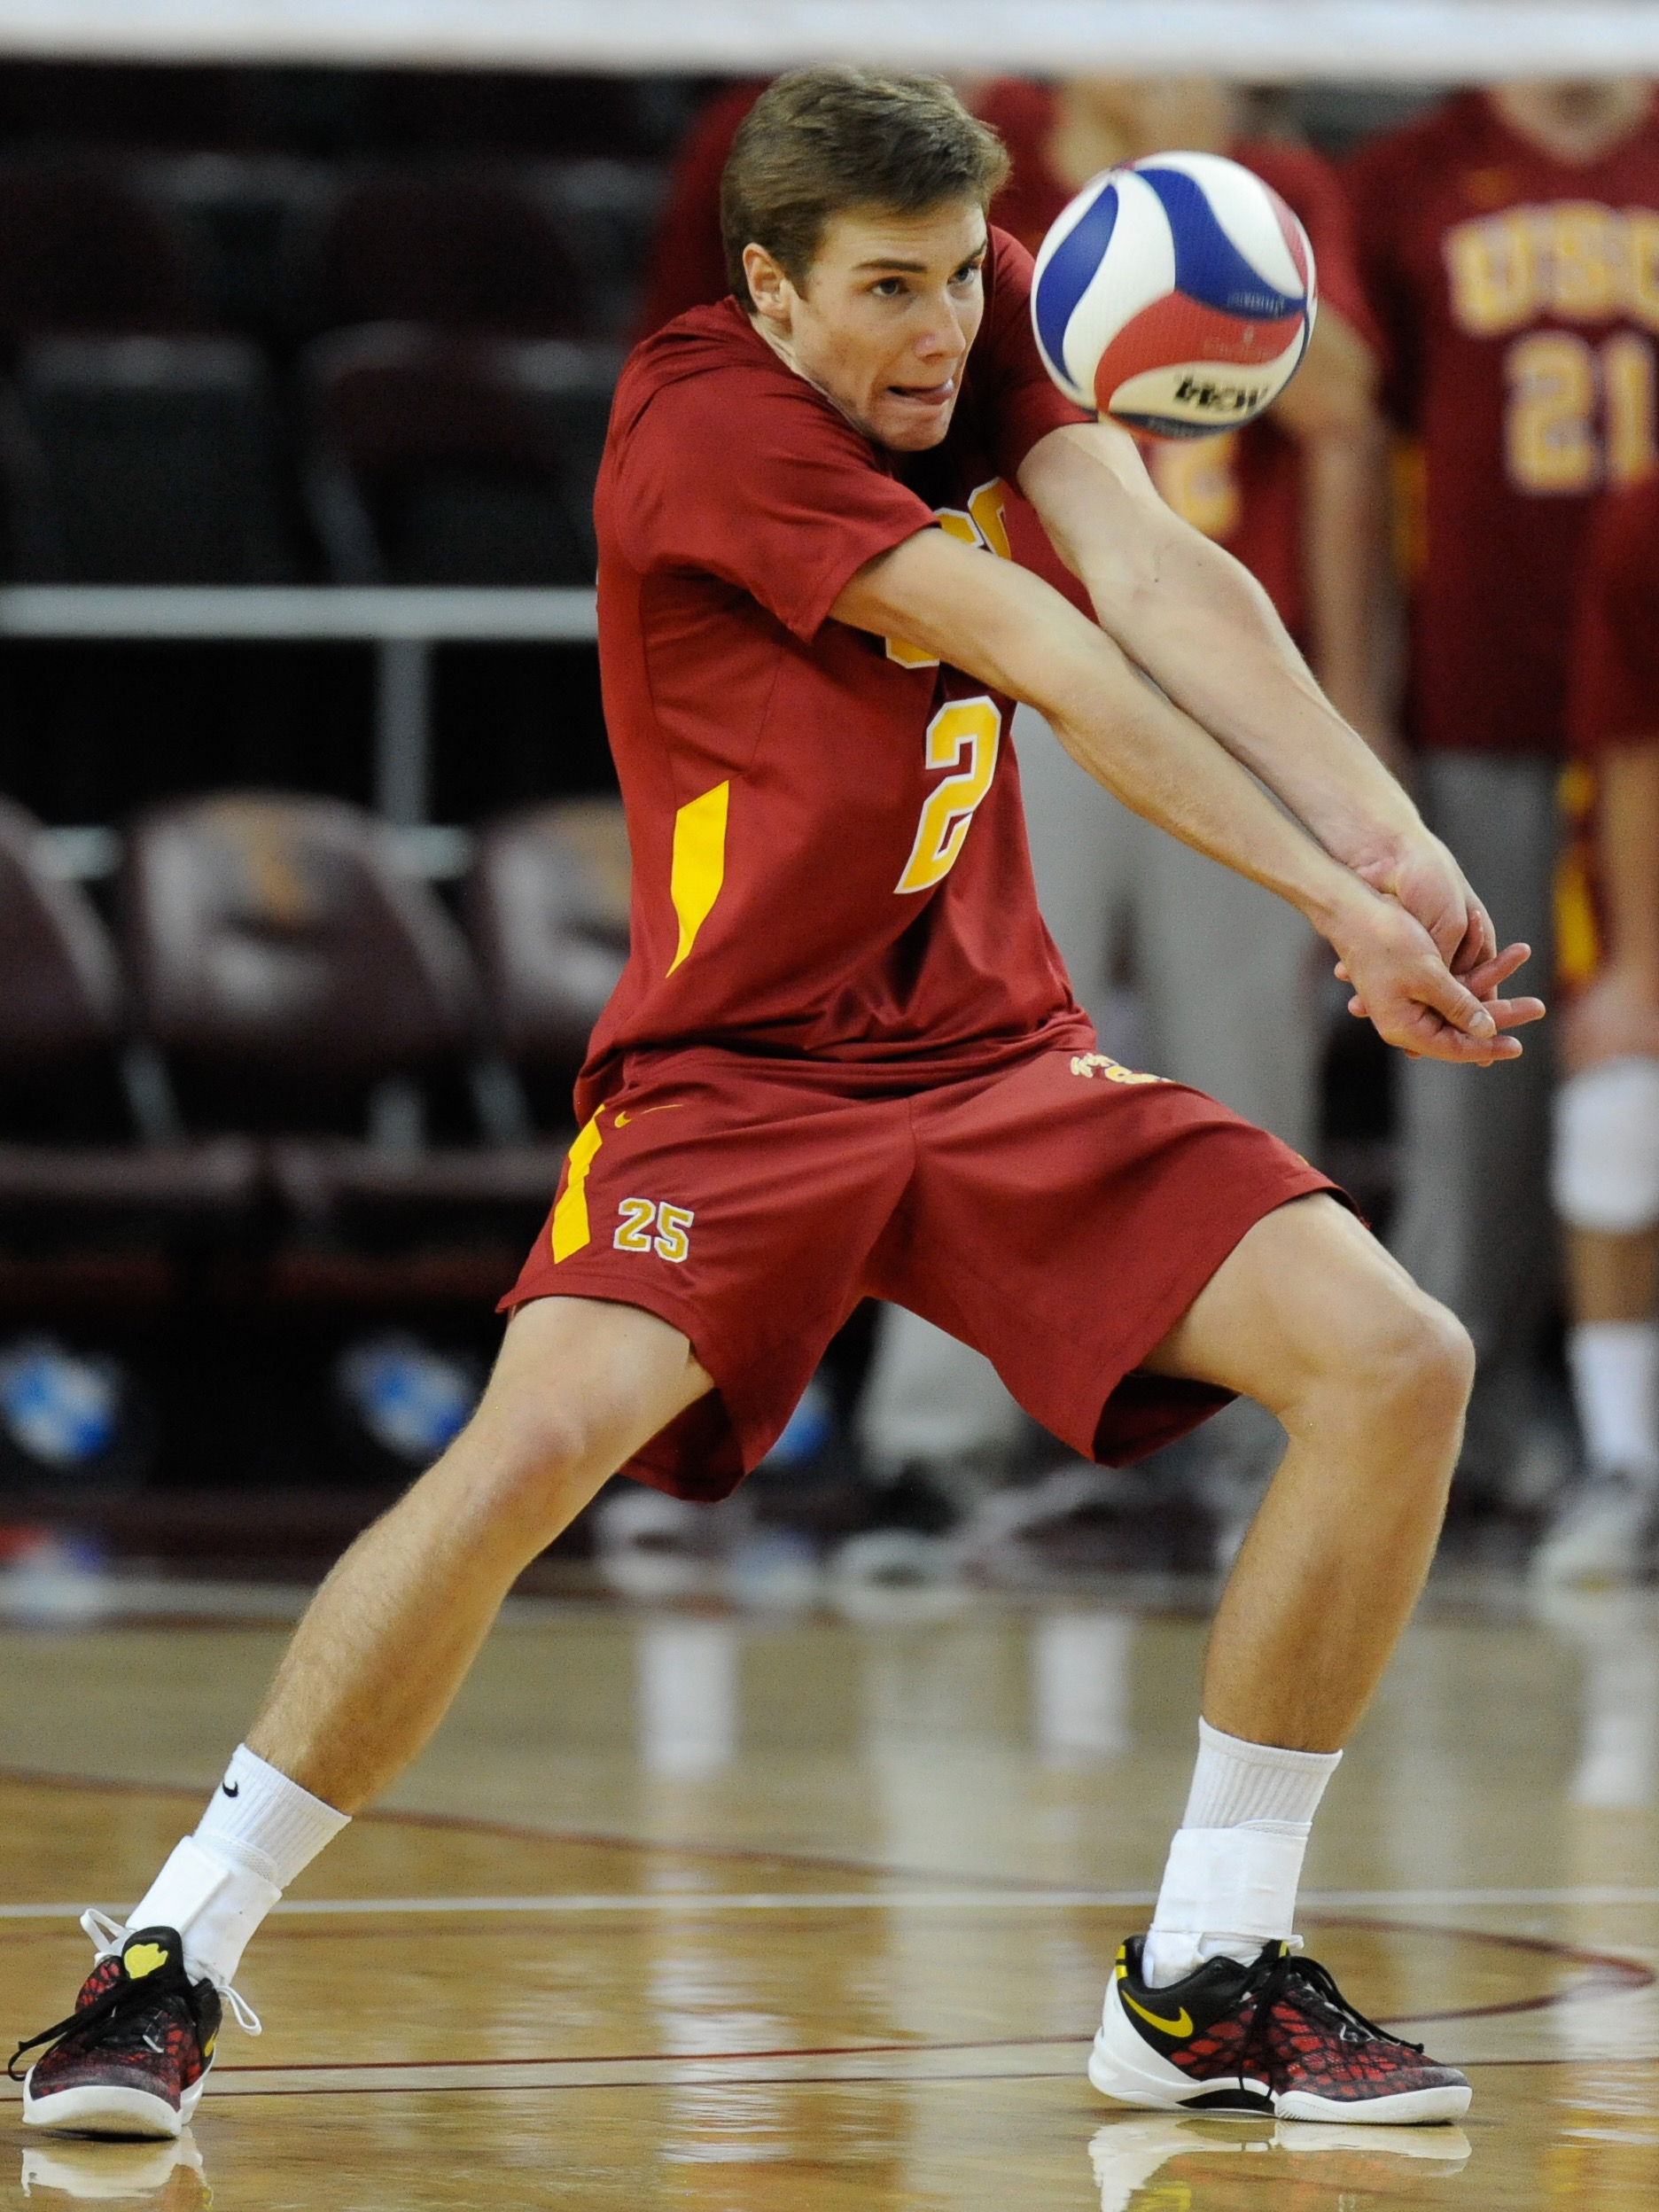 Lucas Yoder USC men's volleyball